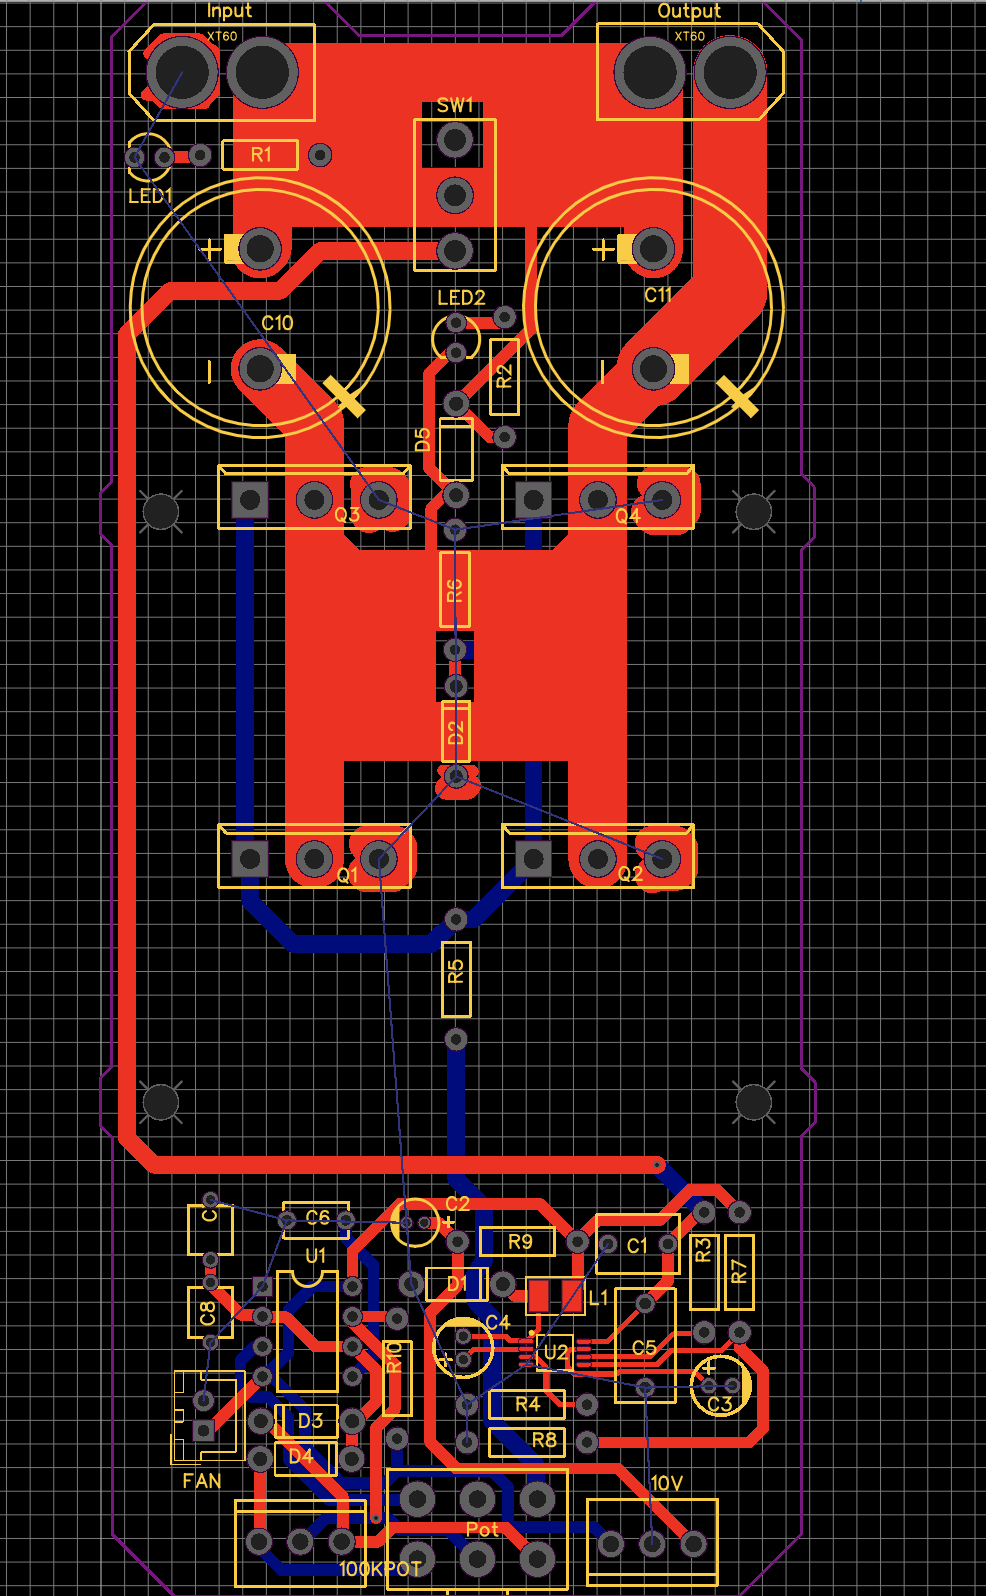 Designing the Printed Circuit Boards